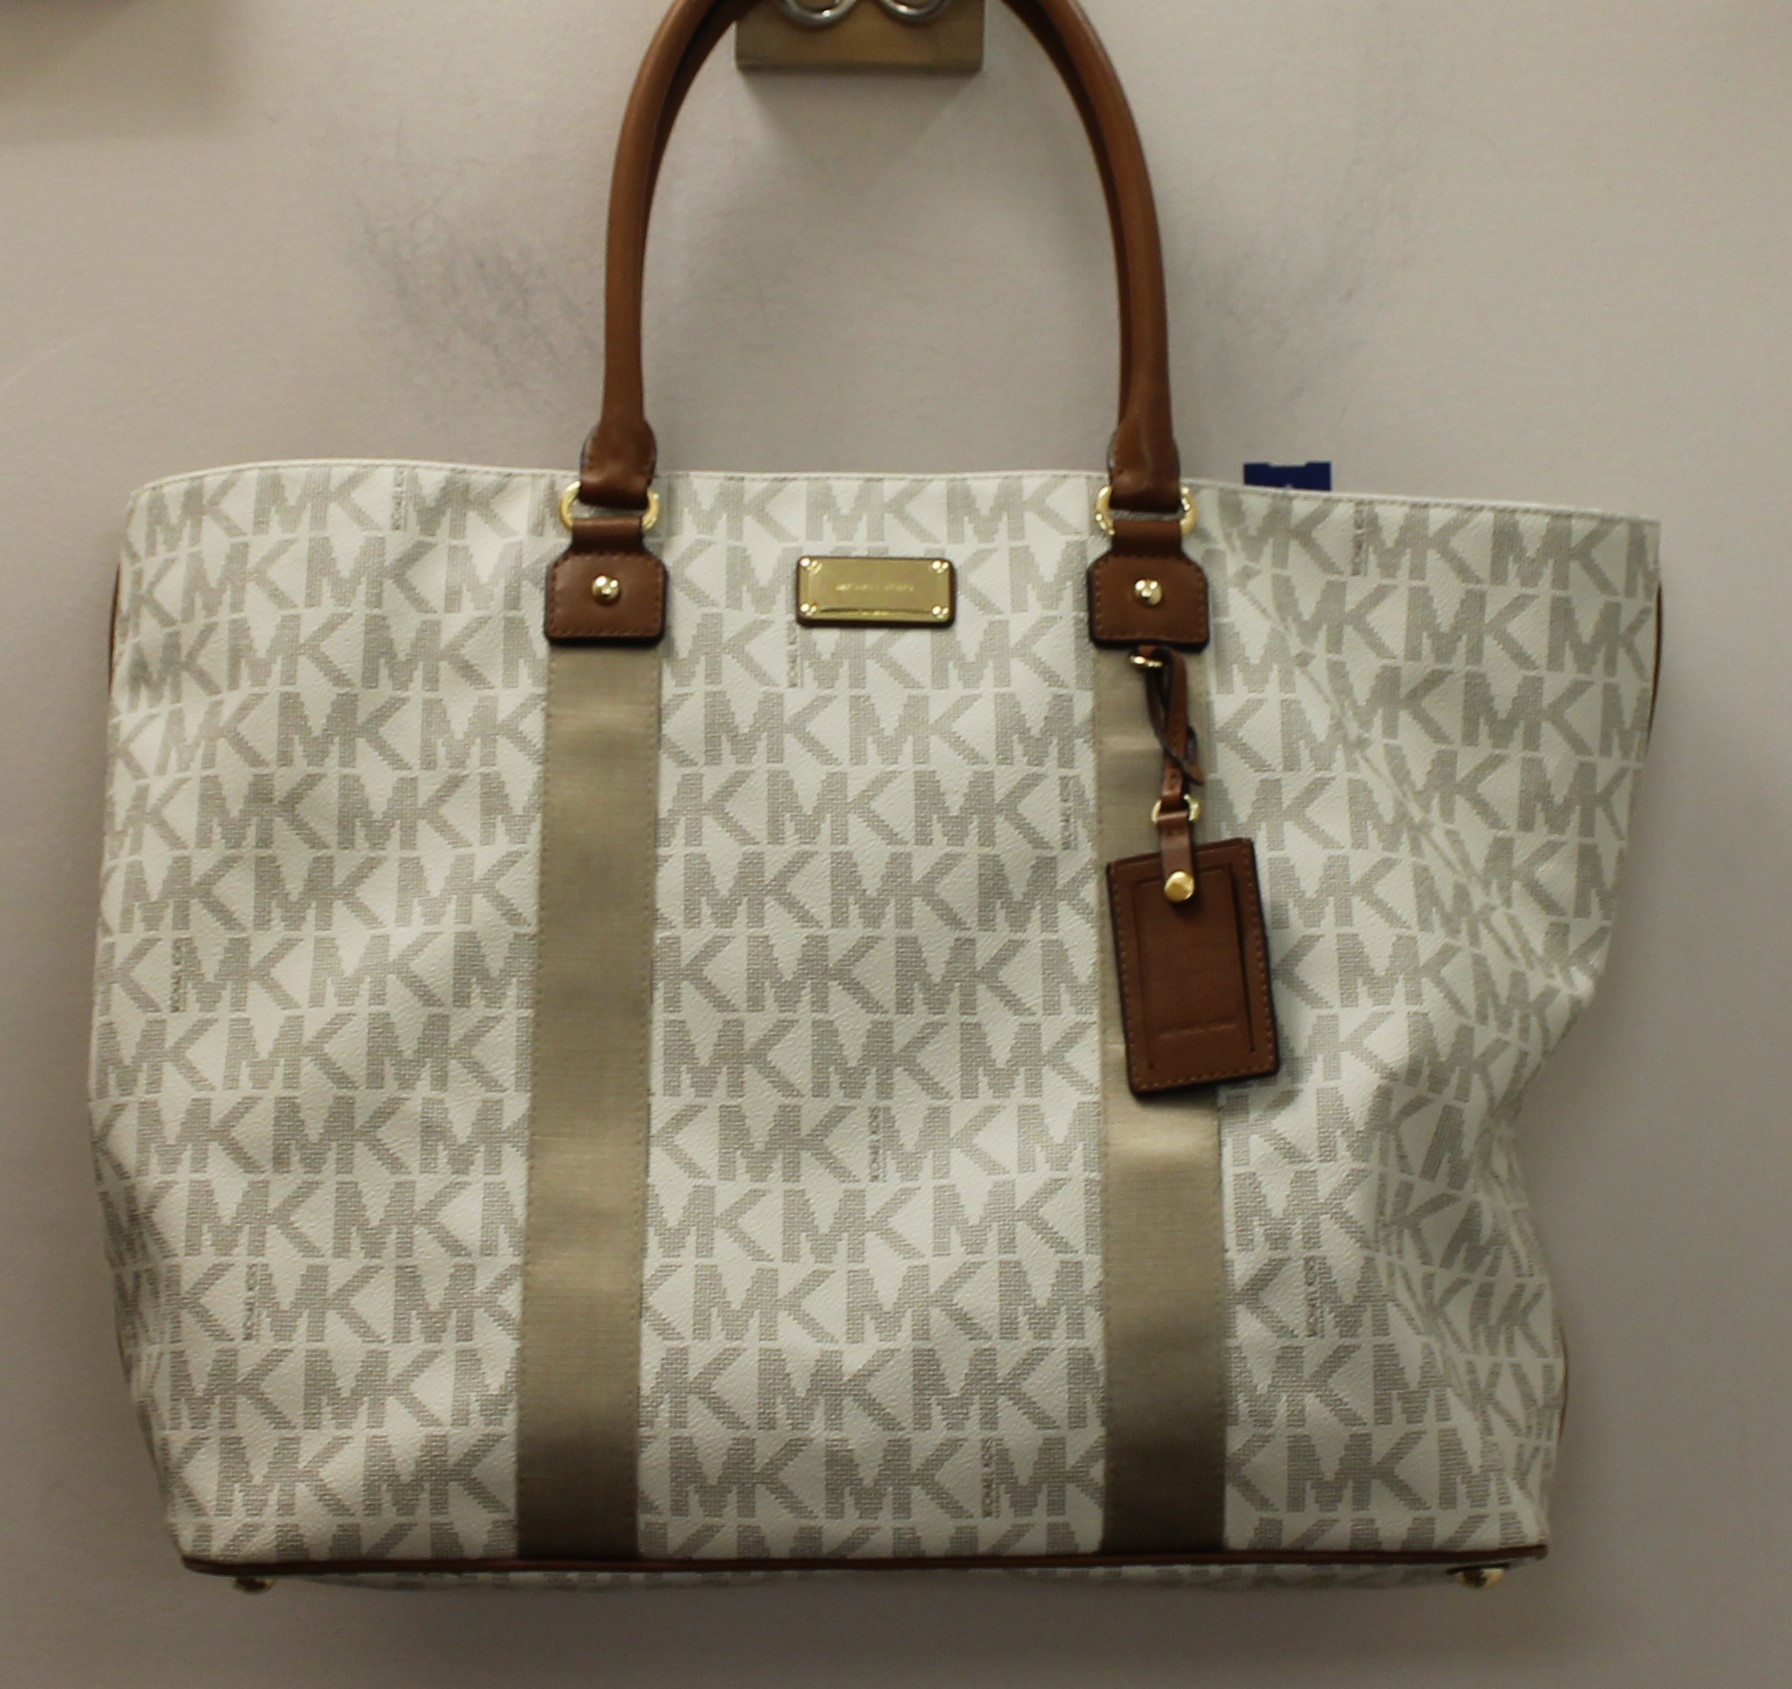 MICHAEL-KORS-WHITE-BROWN-GRAY-LEATHER-AND-CANVAS-LOGO-TOTE_69120A.jpg